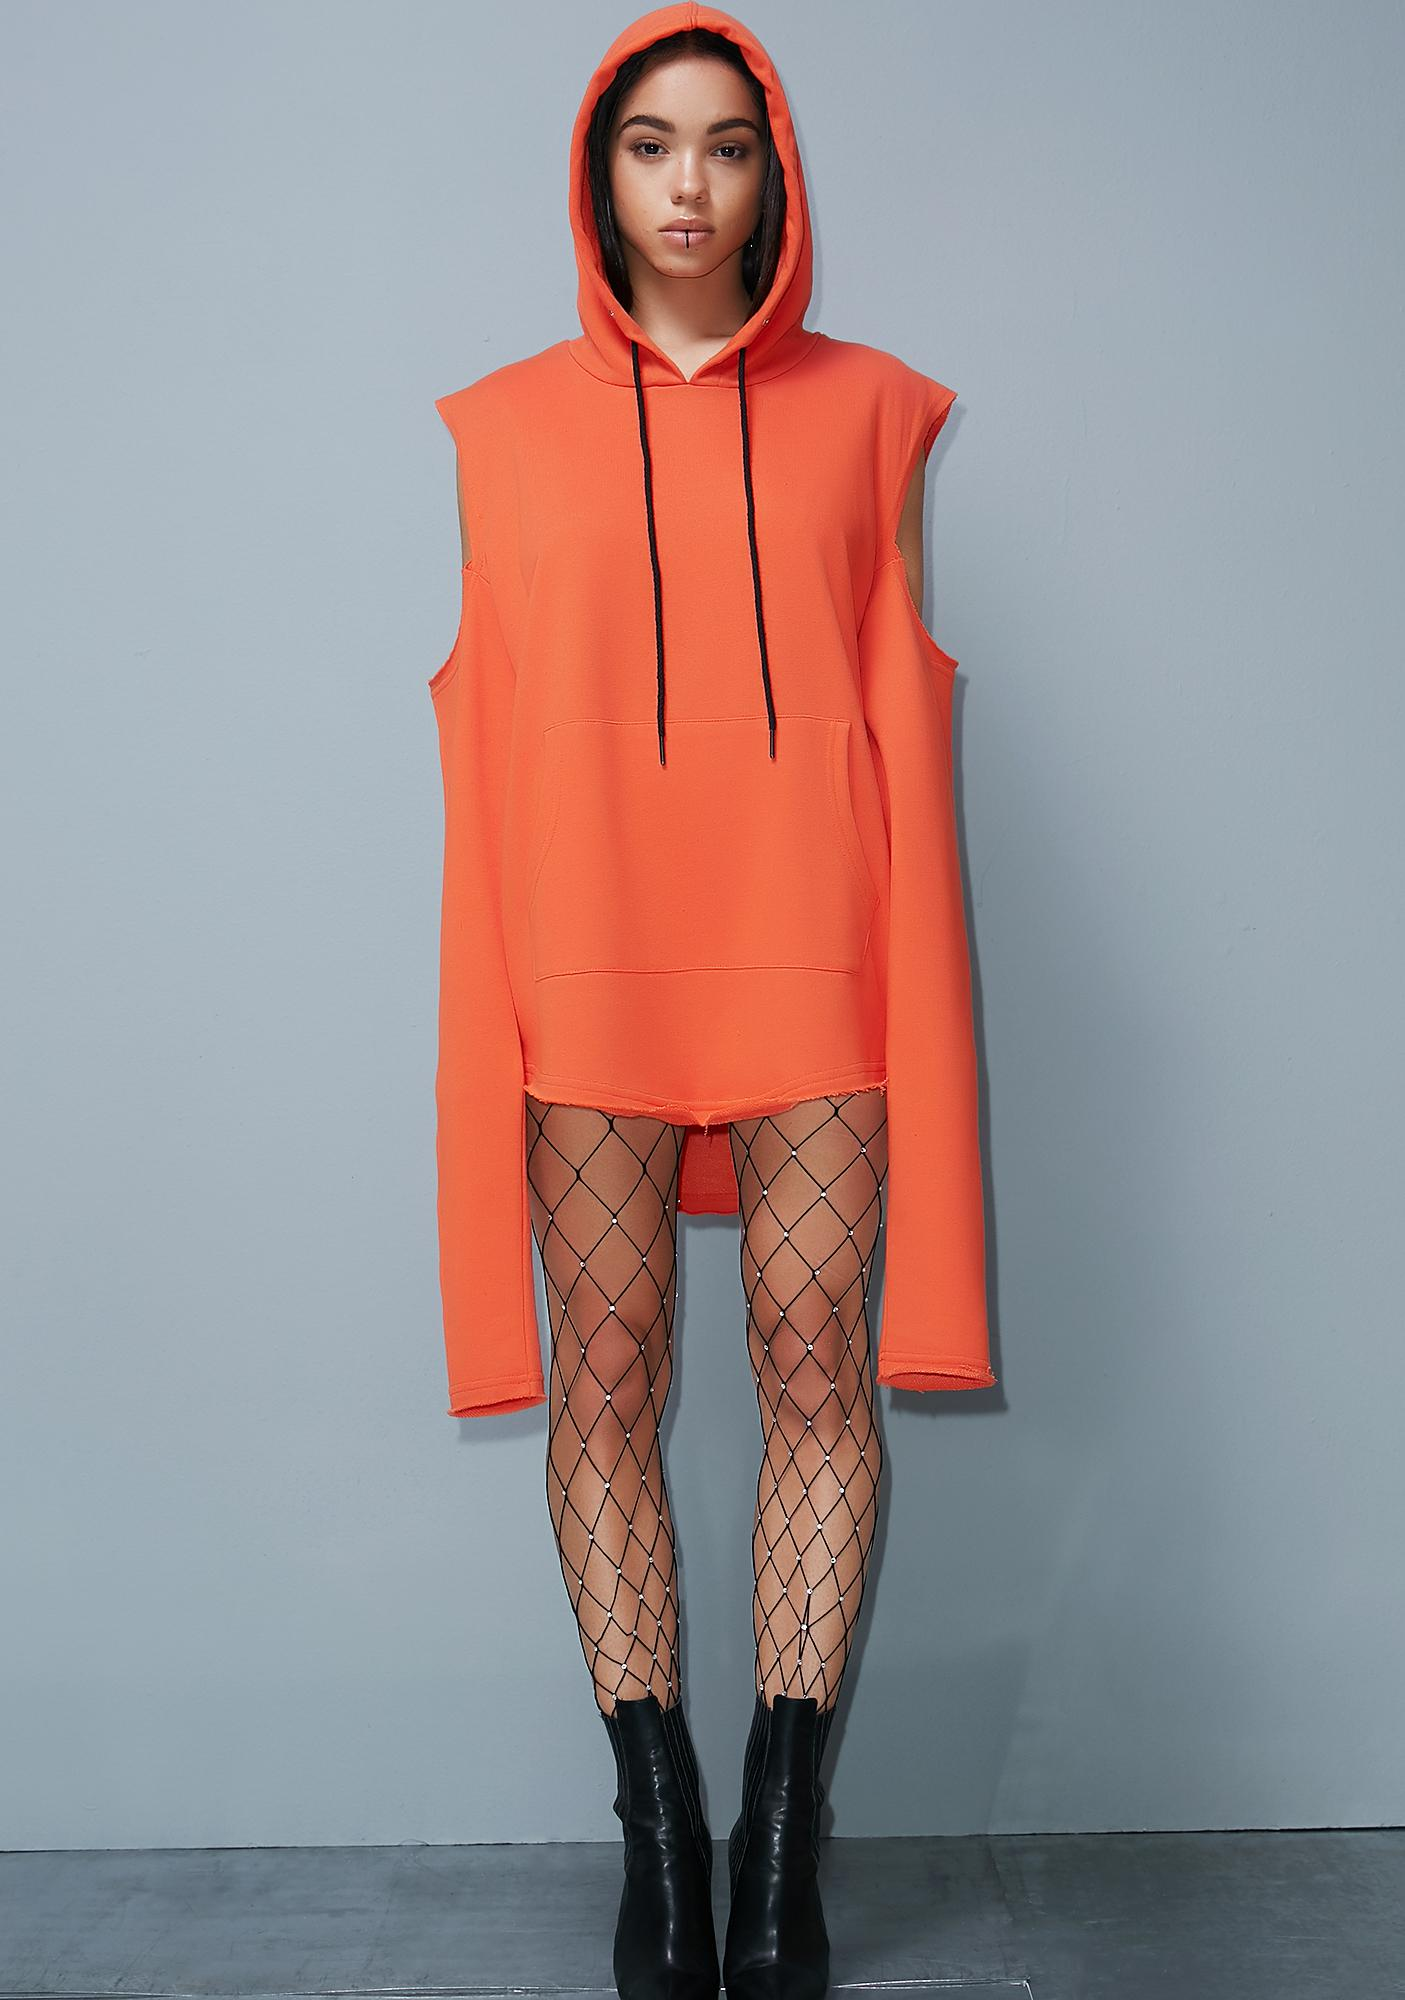 ca27e1f6f9d Poster Grl Orange Street Smarts Sweatshirt Dress